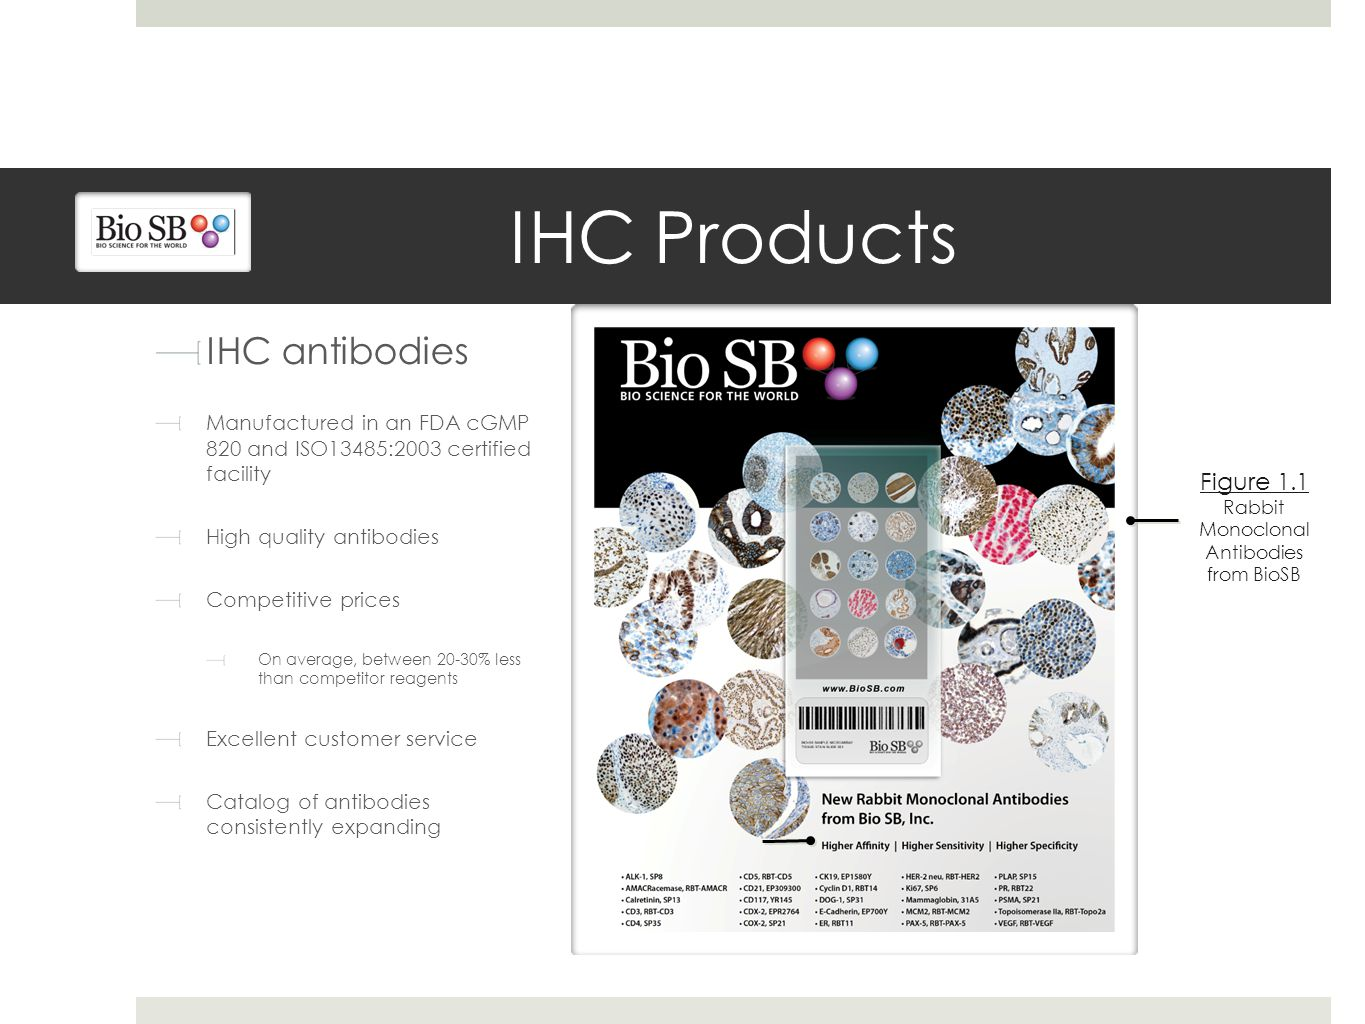 IHC Products IHC antibodies Manufactured in an FDA cGMP 820 and ISO13485:2003 certified facility High quality antibodies Competitive prices On average, between 20-30% less than competitor reagents Excellent customer service Catalog of antibodies consistently expanding Figure 1.1 Rabbit Monoclonal Antibodies from BioSB